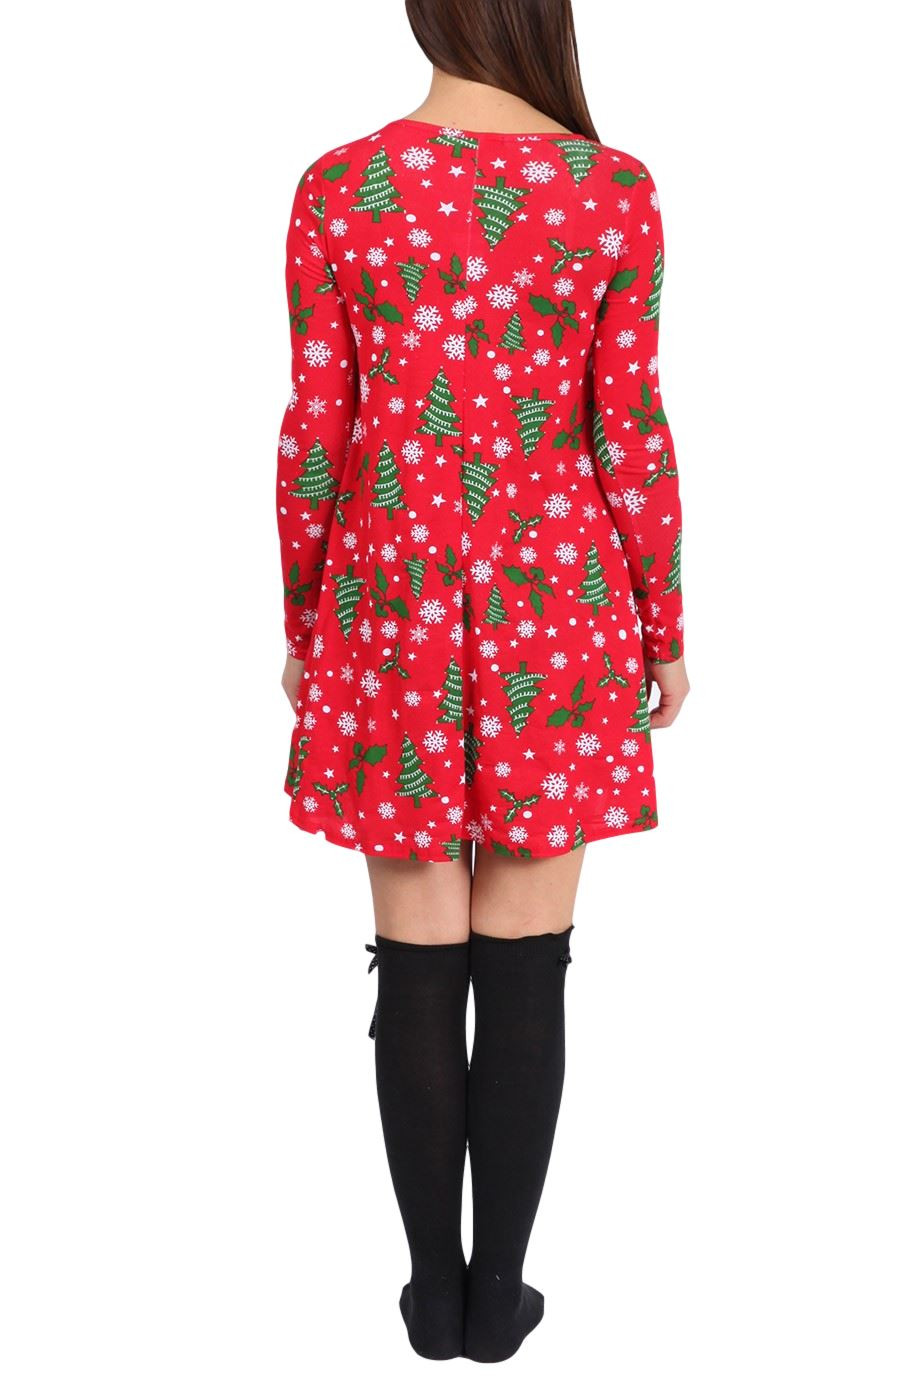 Christmas Swing Dress  Womens La s Novely Fancy Party Festive Christmas Swing